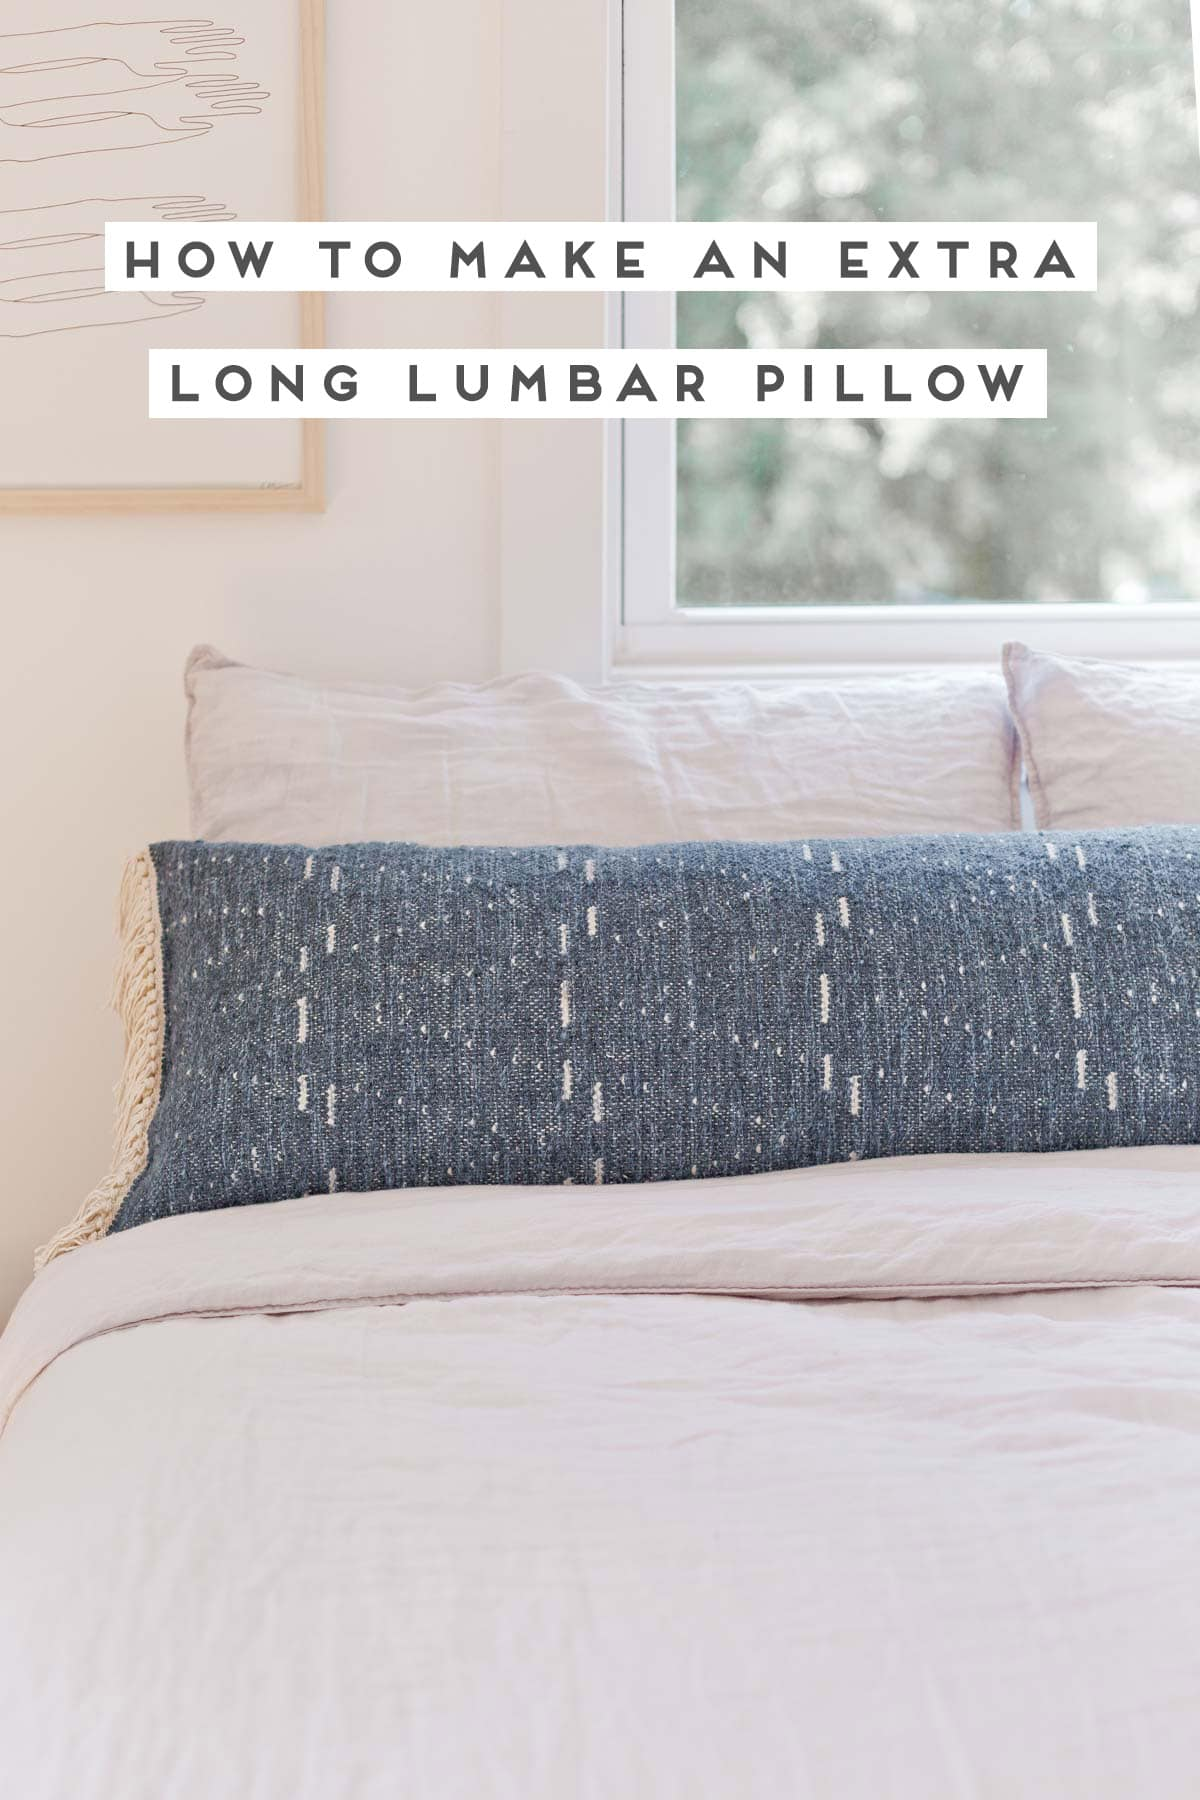 Extra long lumbar pillow in neutral bedroom, with linen bedding.